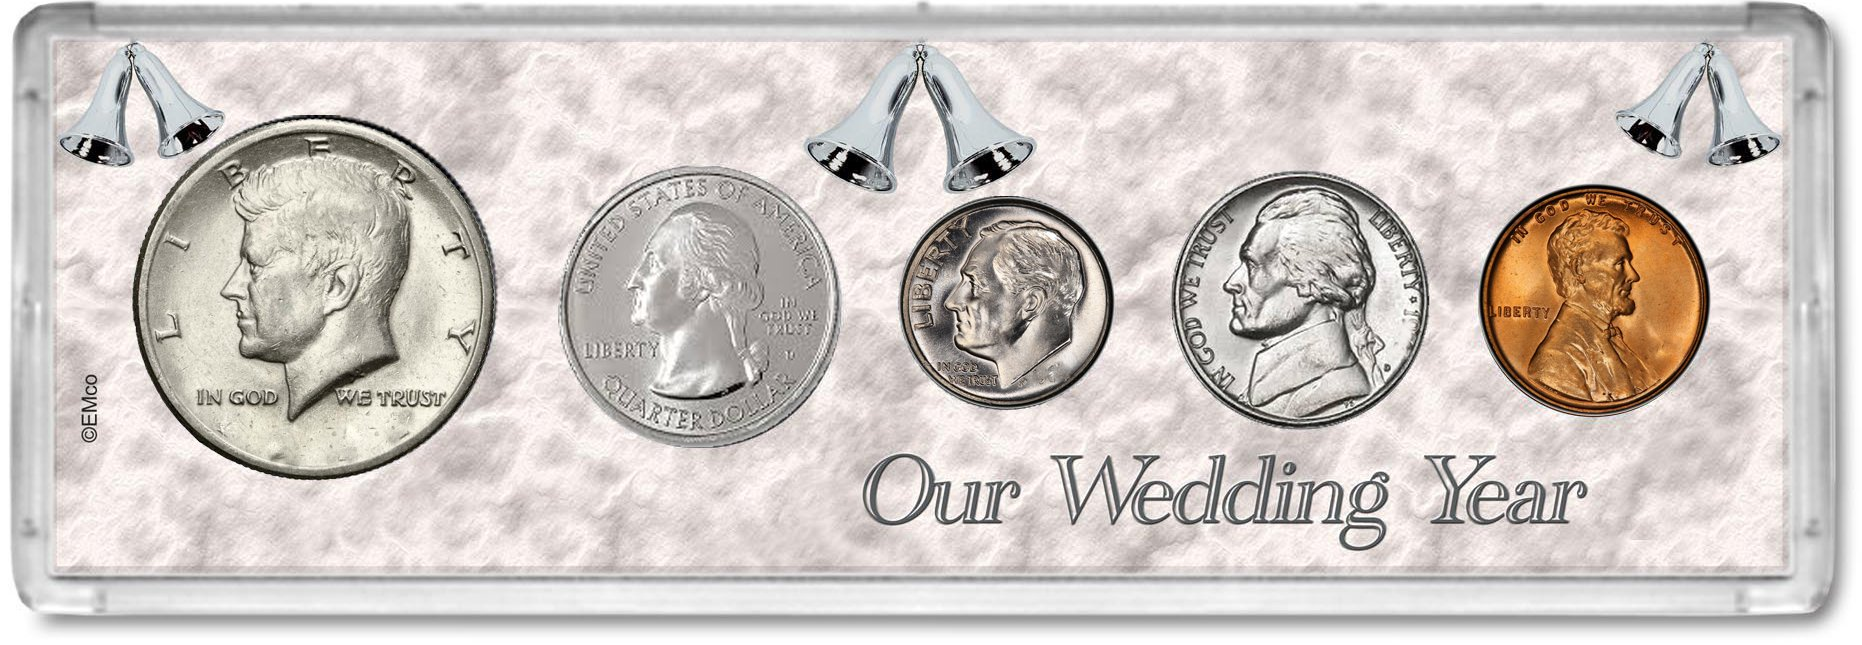 2002 Year Coin Set : 17th Anniversary Gift - Our Wedding Year